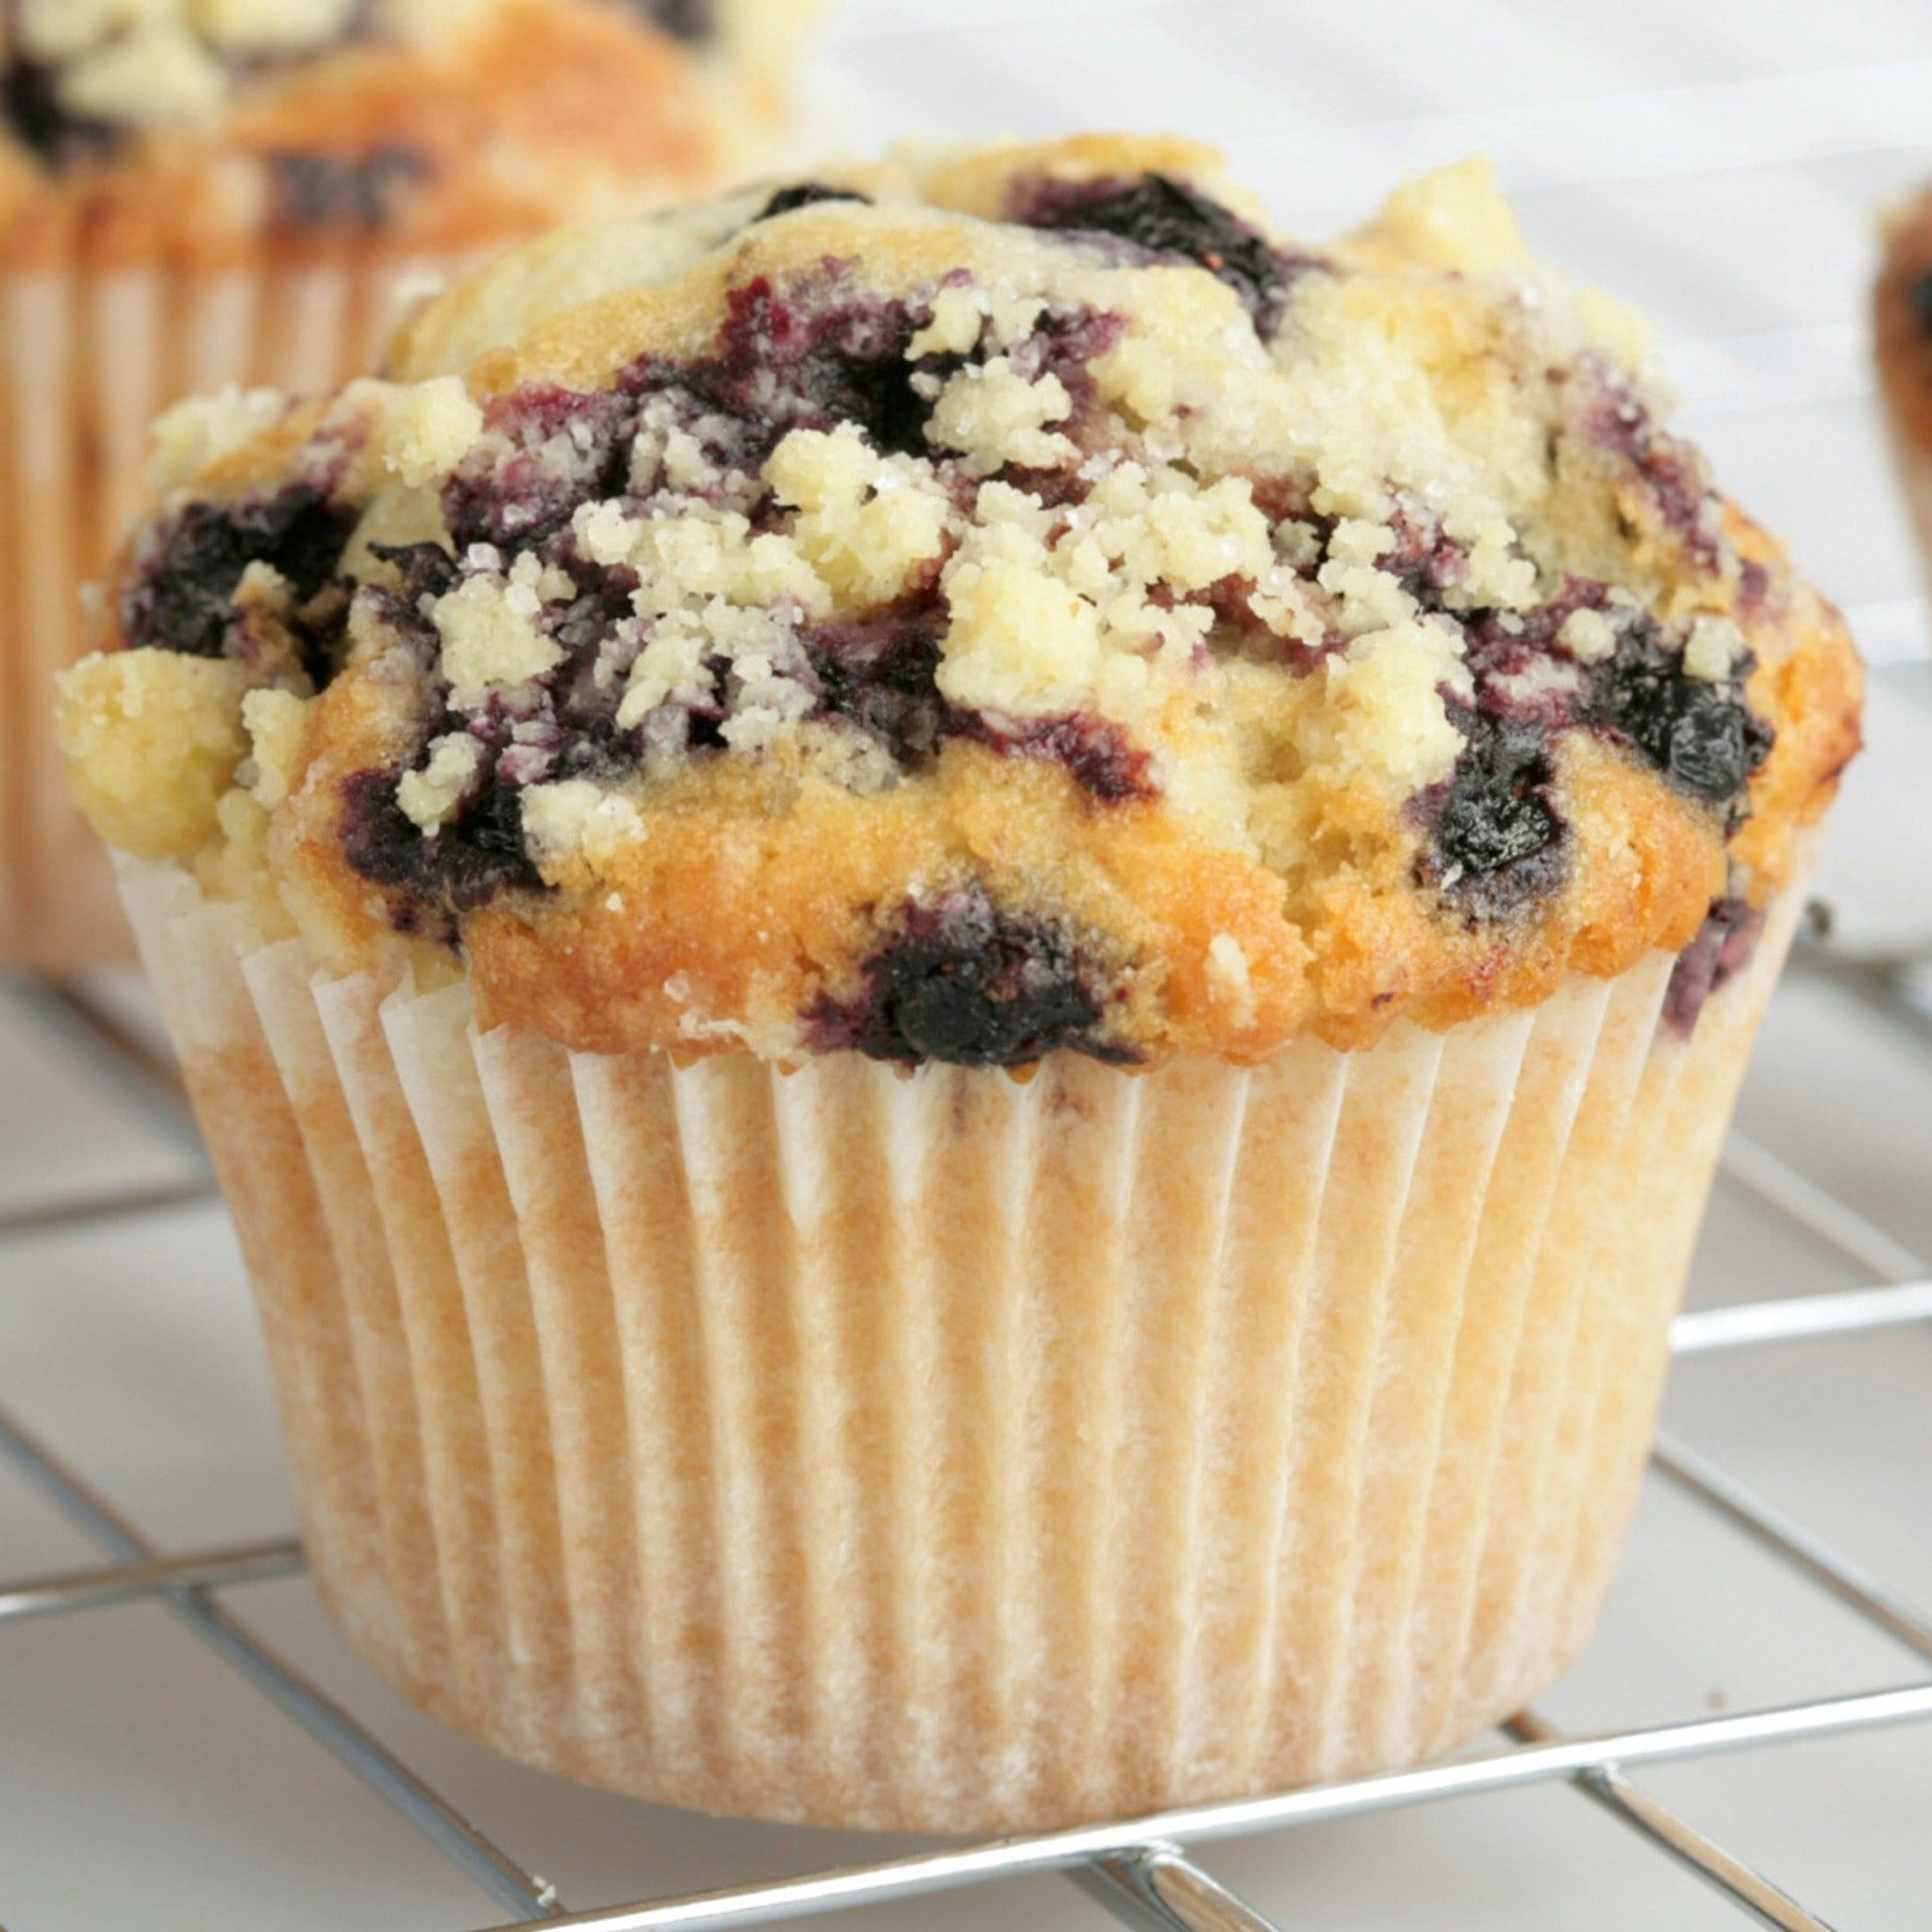 Lemon, pecan & blueberry muffin | Minichic